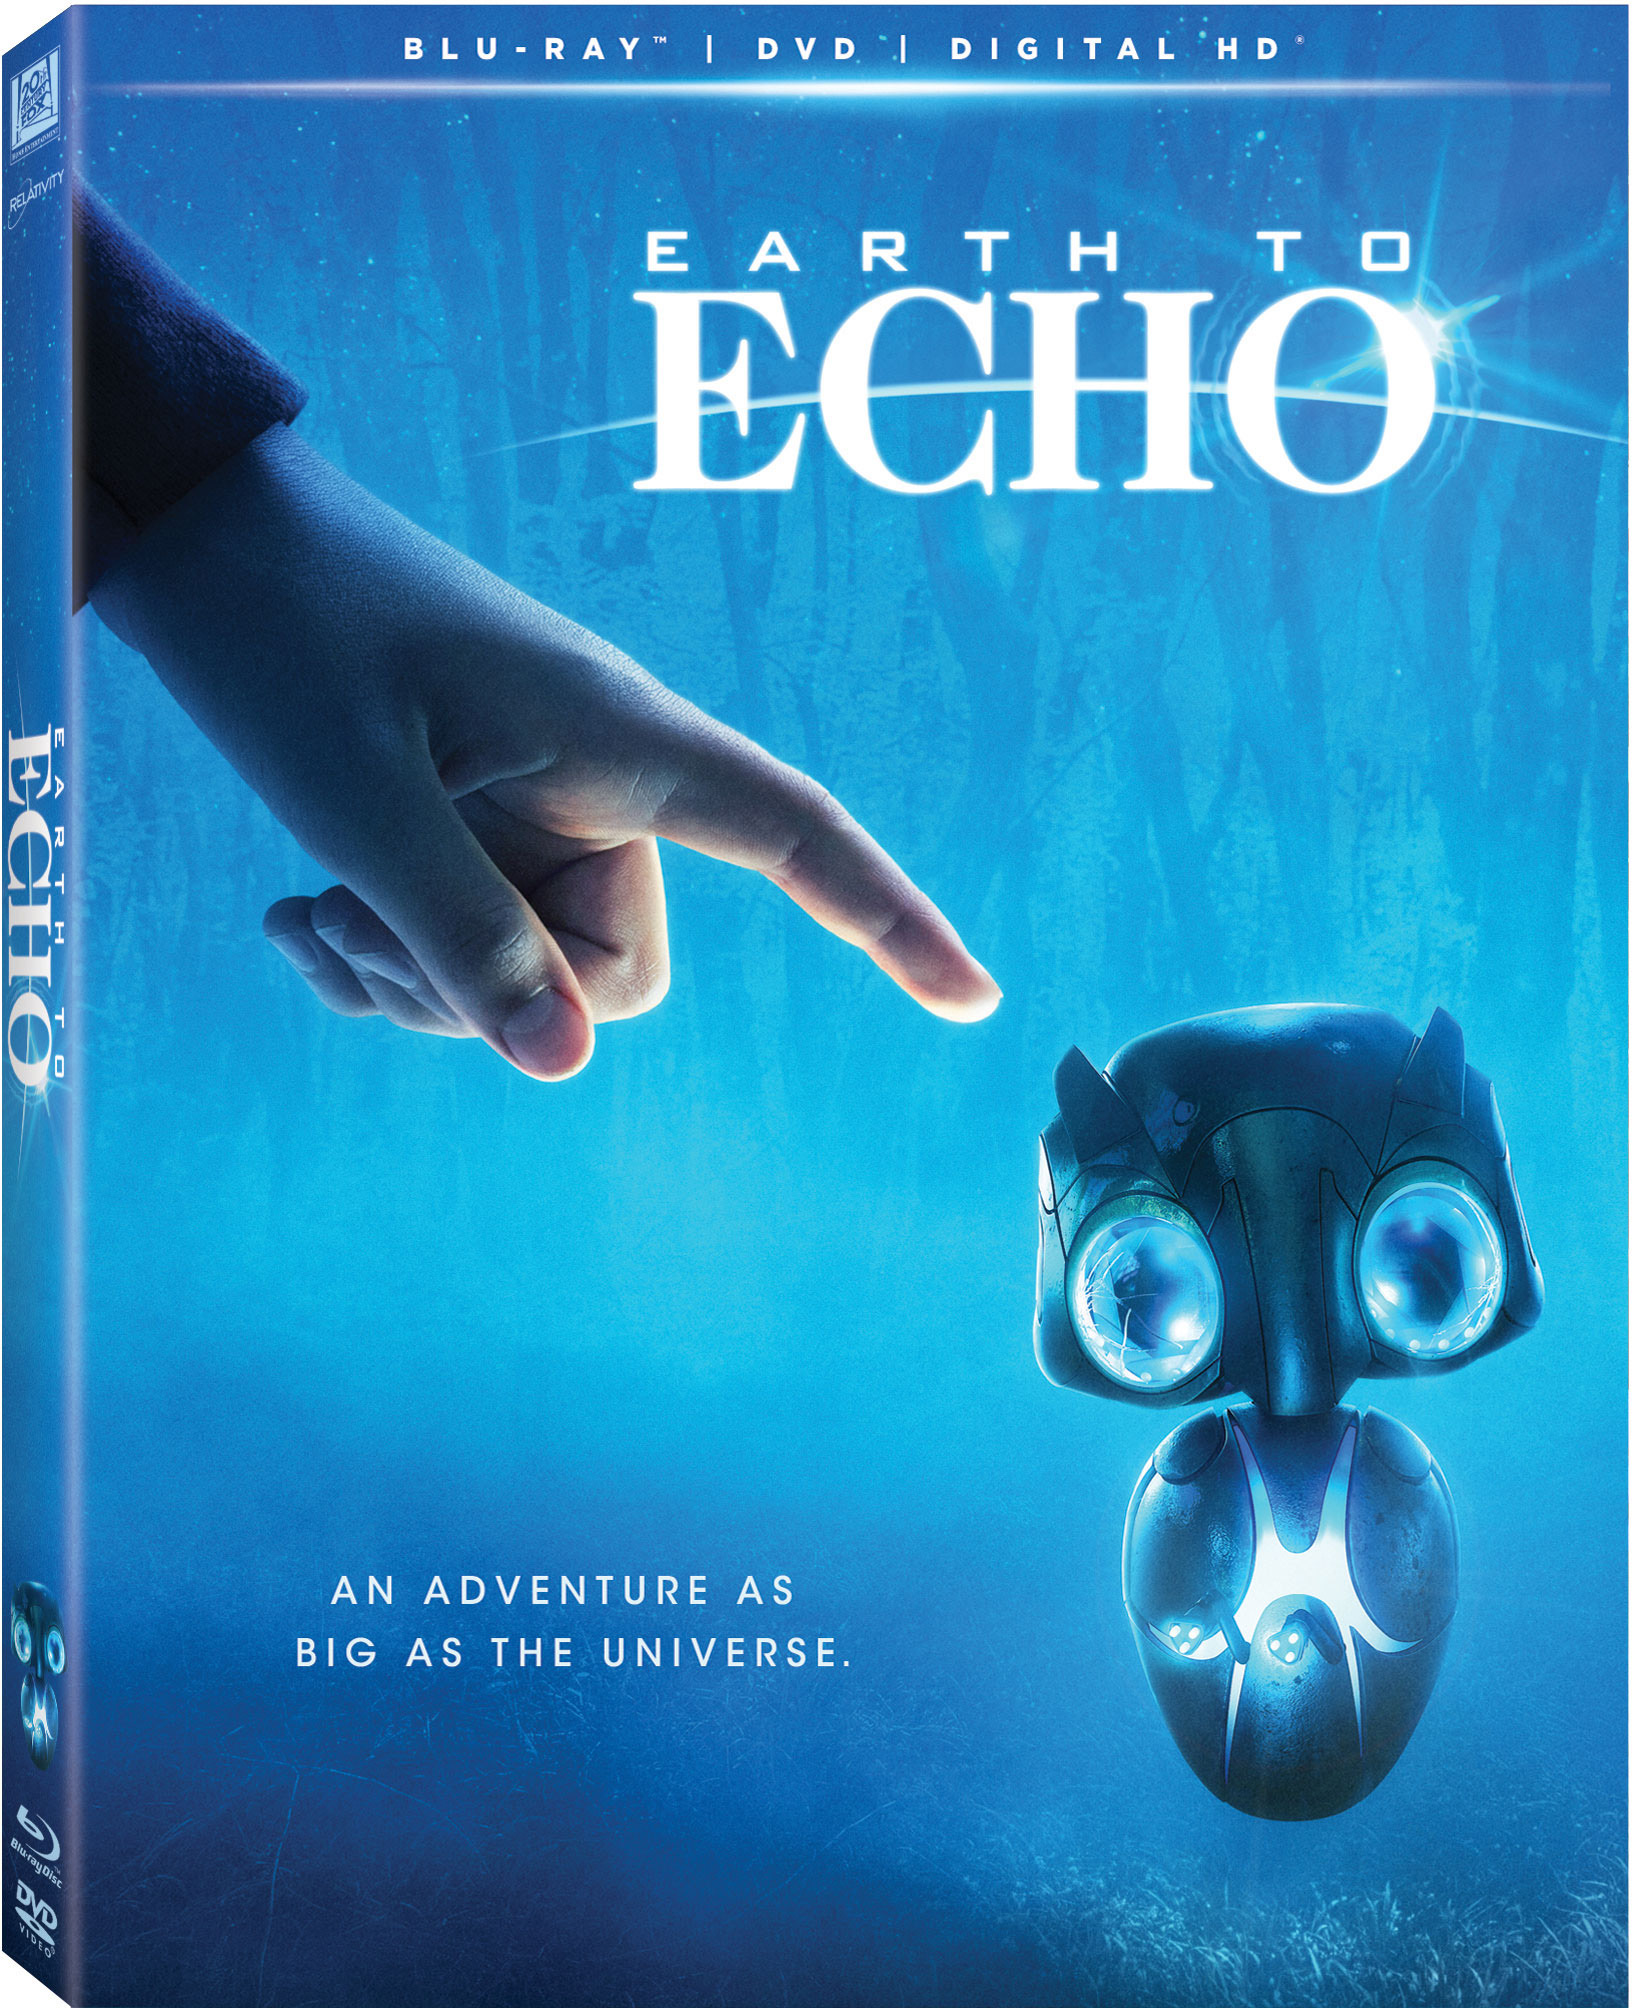 (OVER) Win EARTH TO ECHO on Blu-Ray! ~ Heartwarming extraterrestrial family film ENDS 11/10/14